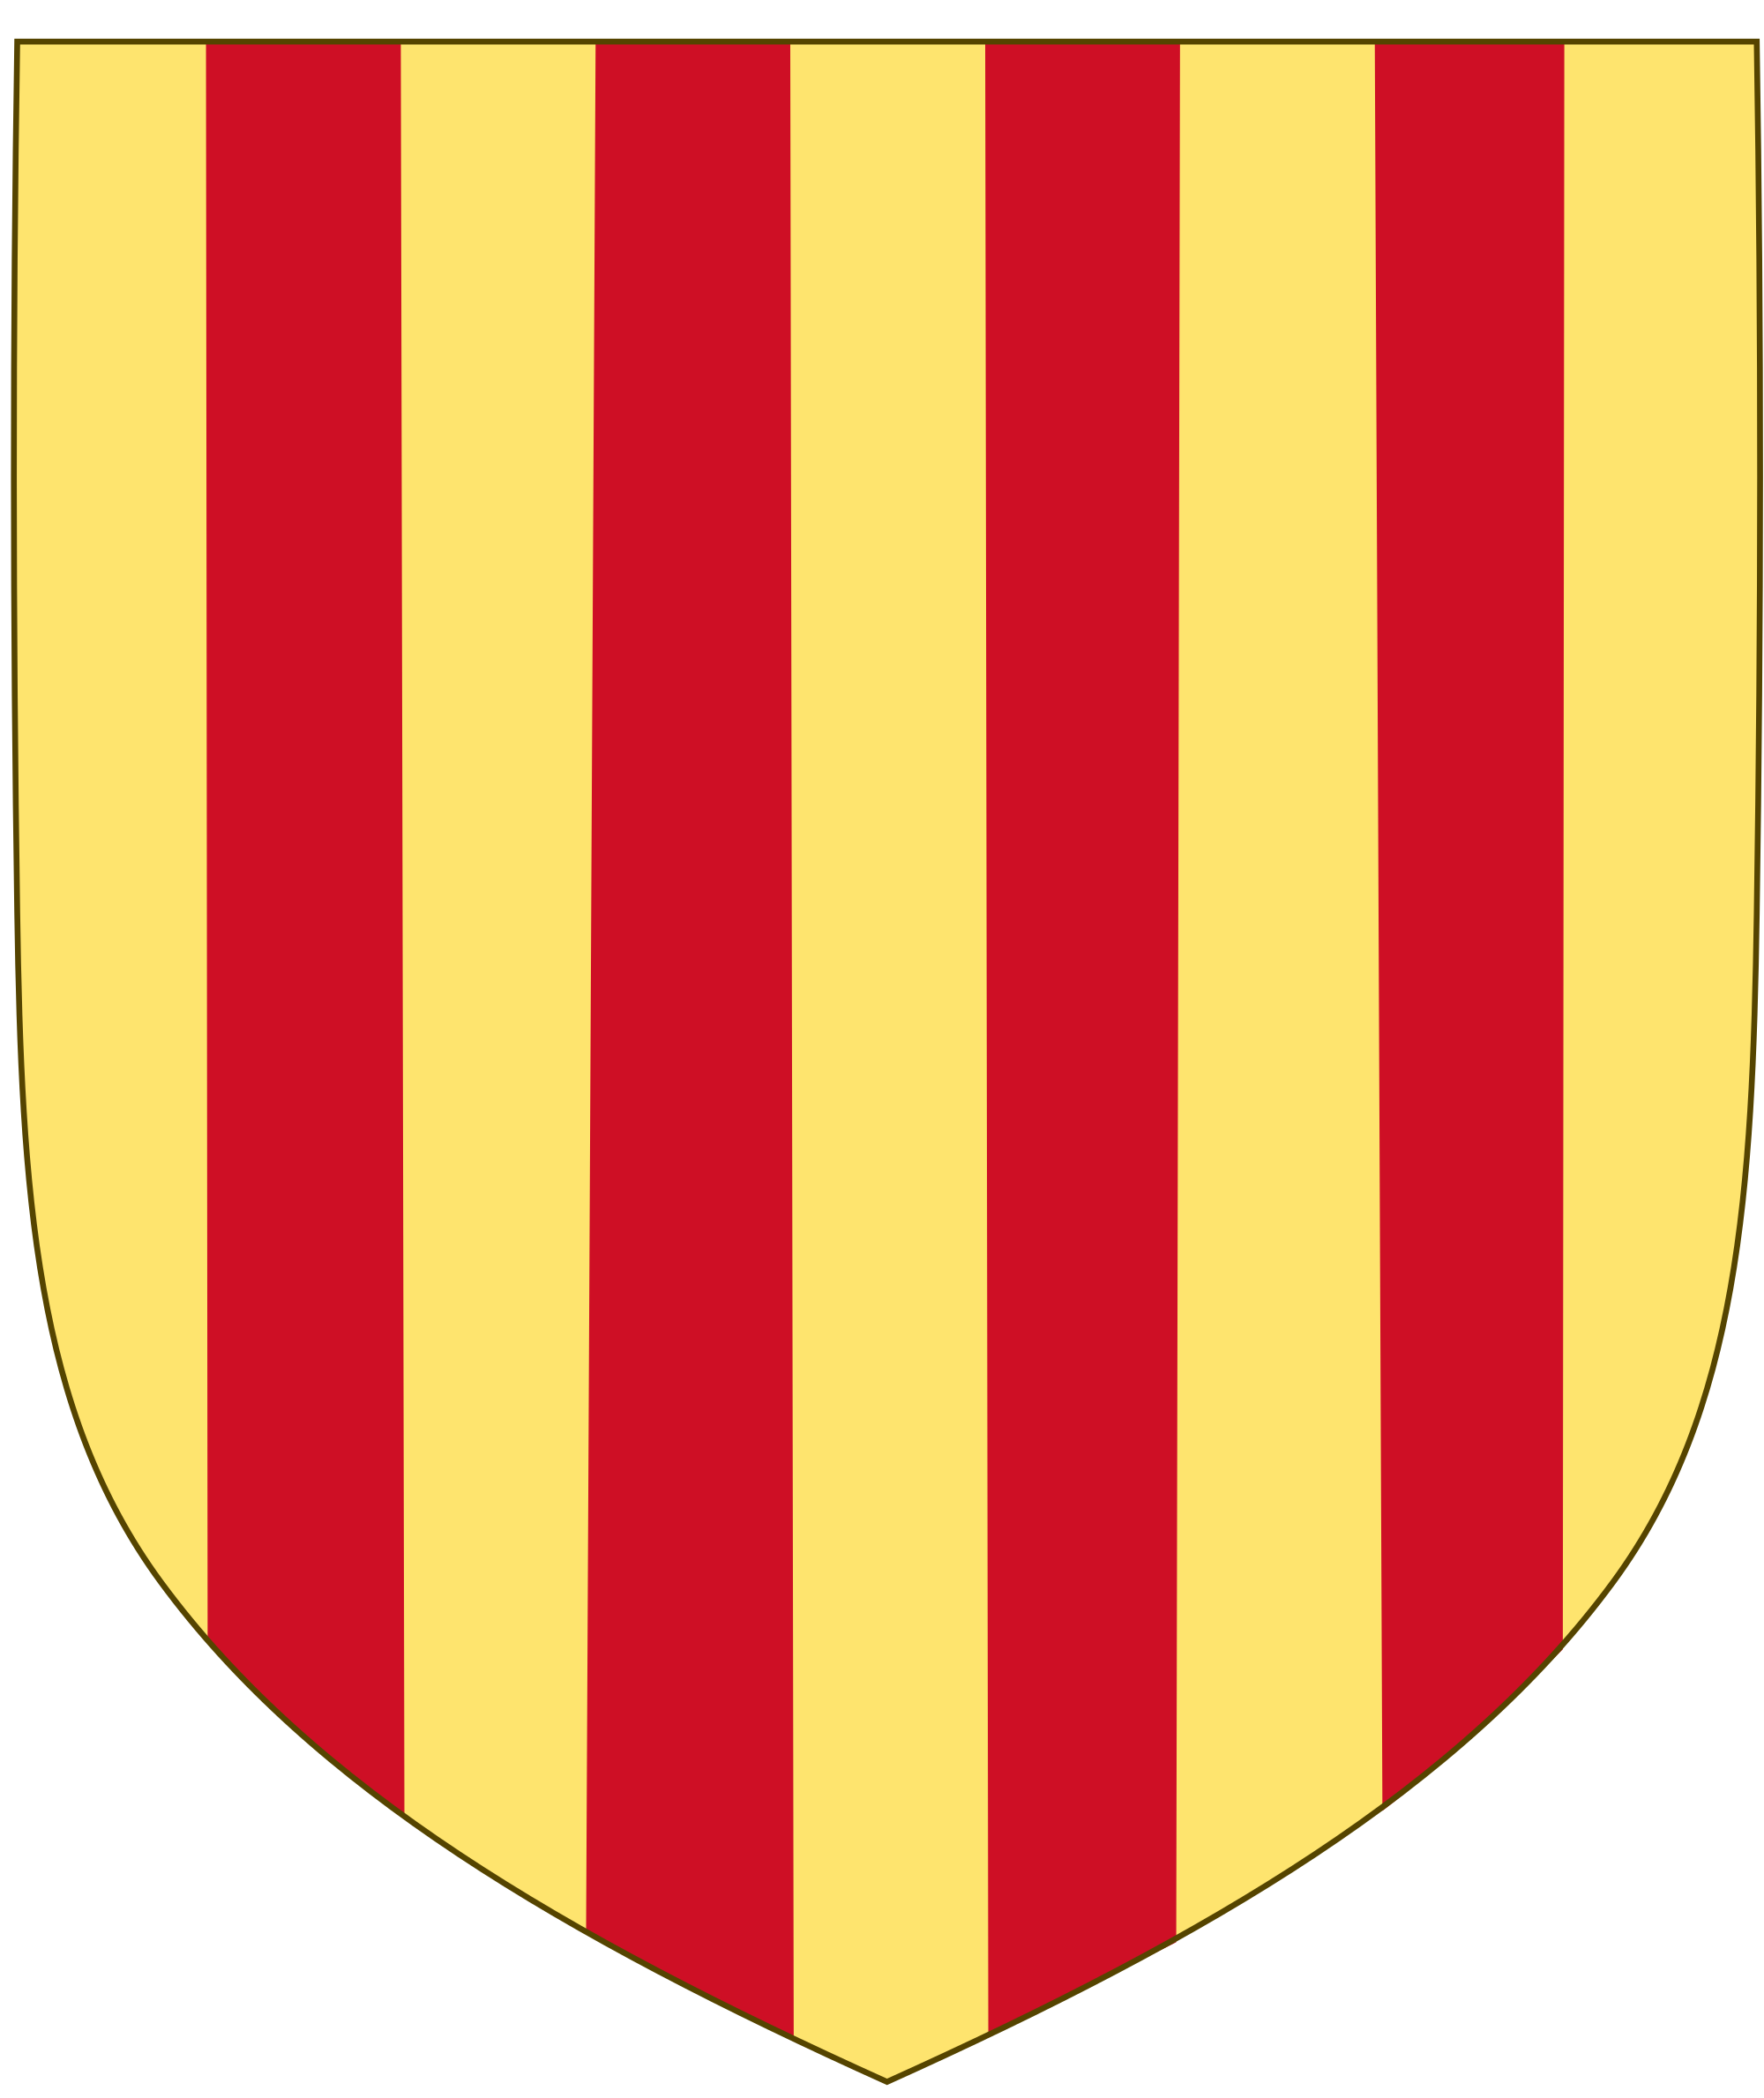 Crown royalstripes clipart clip freeuse library File:Royal arms of Aragon.svg - Wikimedia Commons clip freeuse library